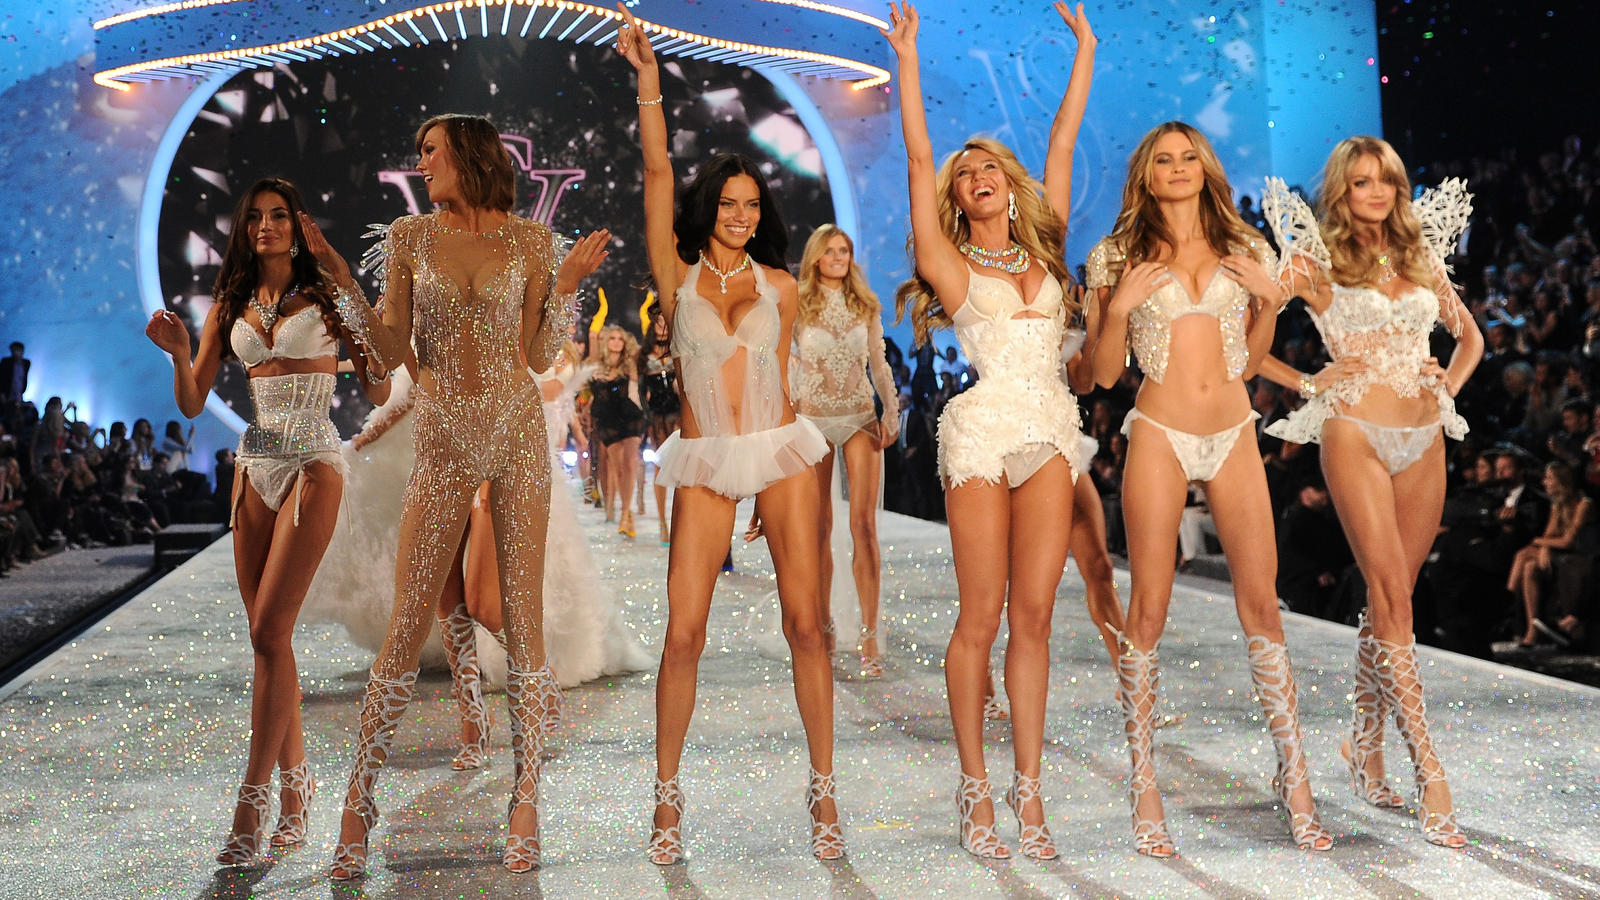 walks the runway at the 2013 Victoria's Secret Fashion Show at Lexington Avenue Armory on November 13, 2013 in New York City.